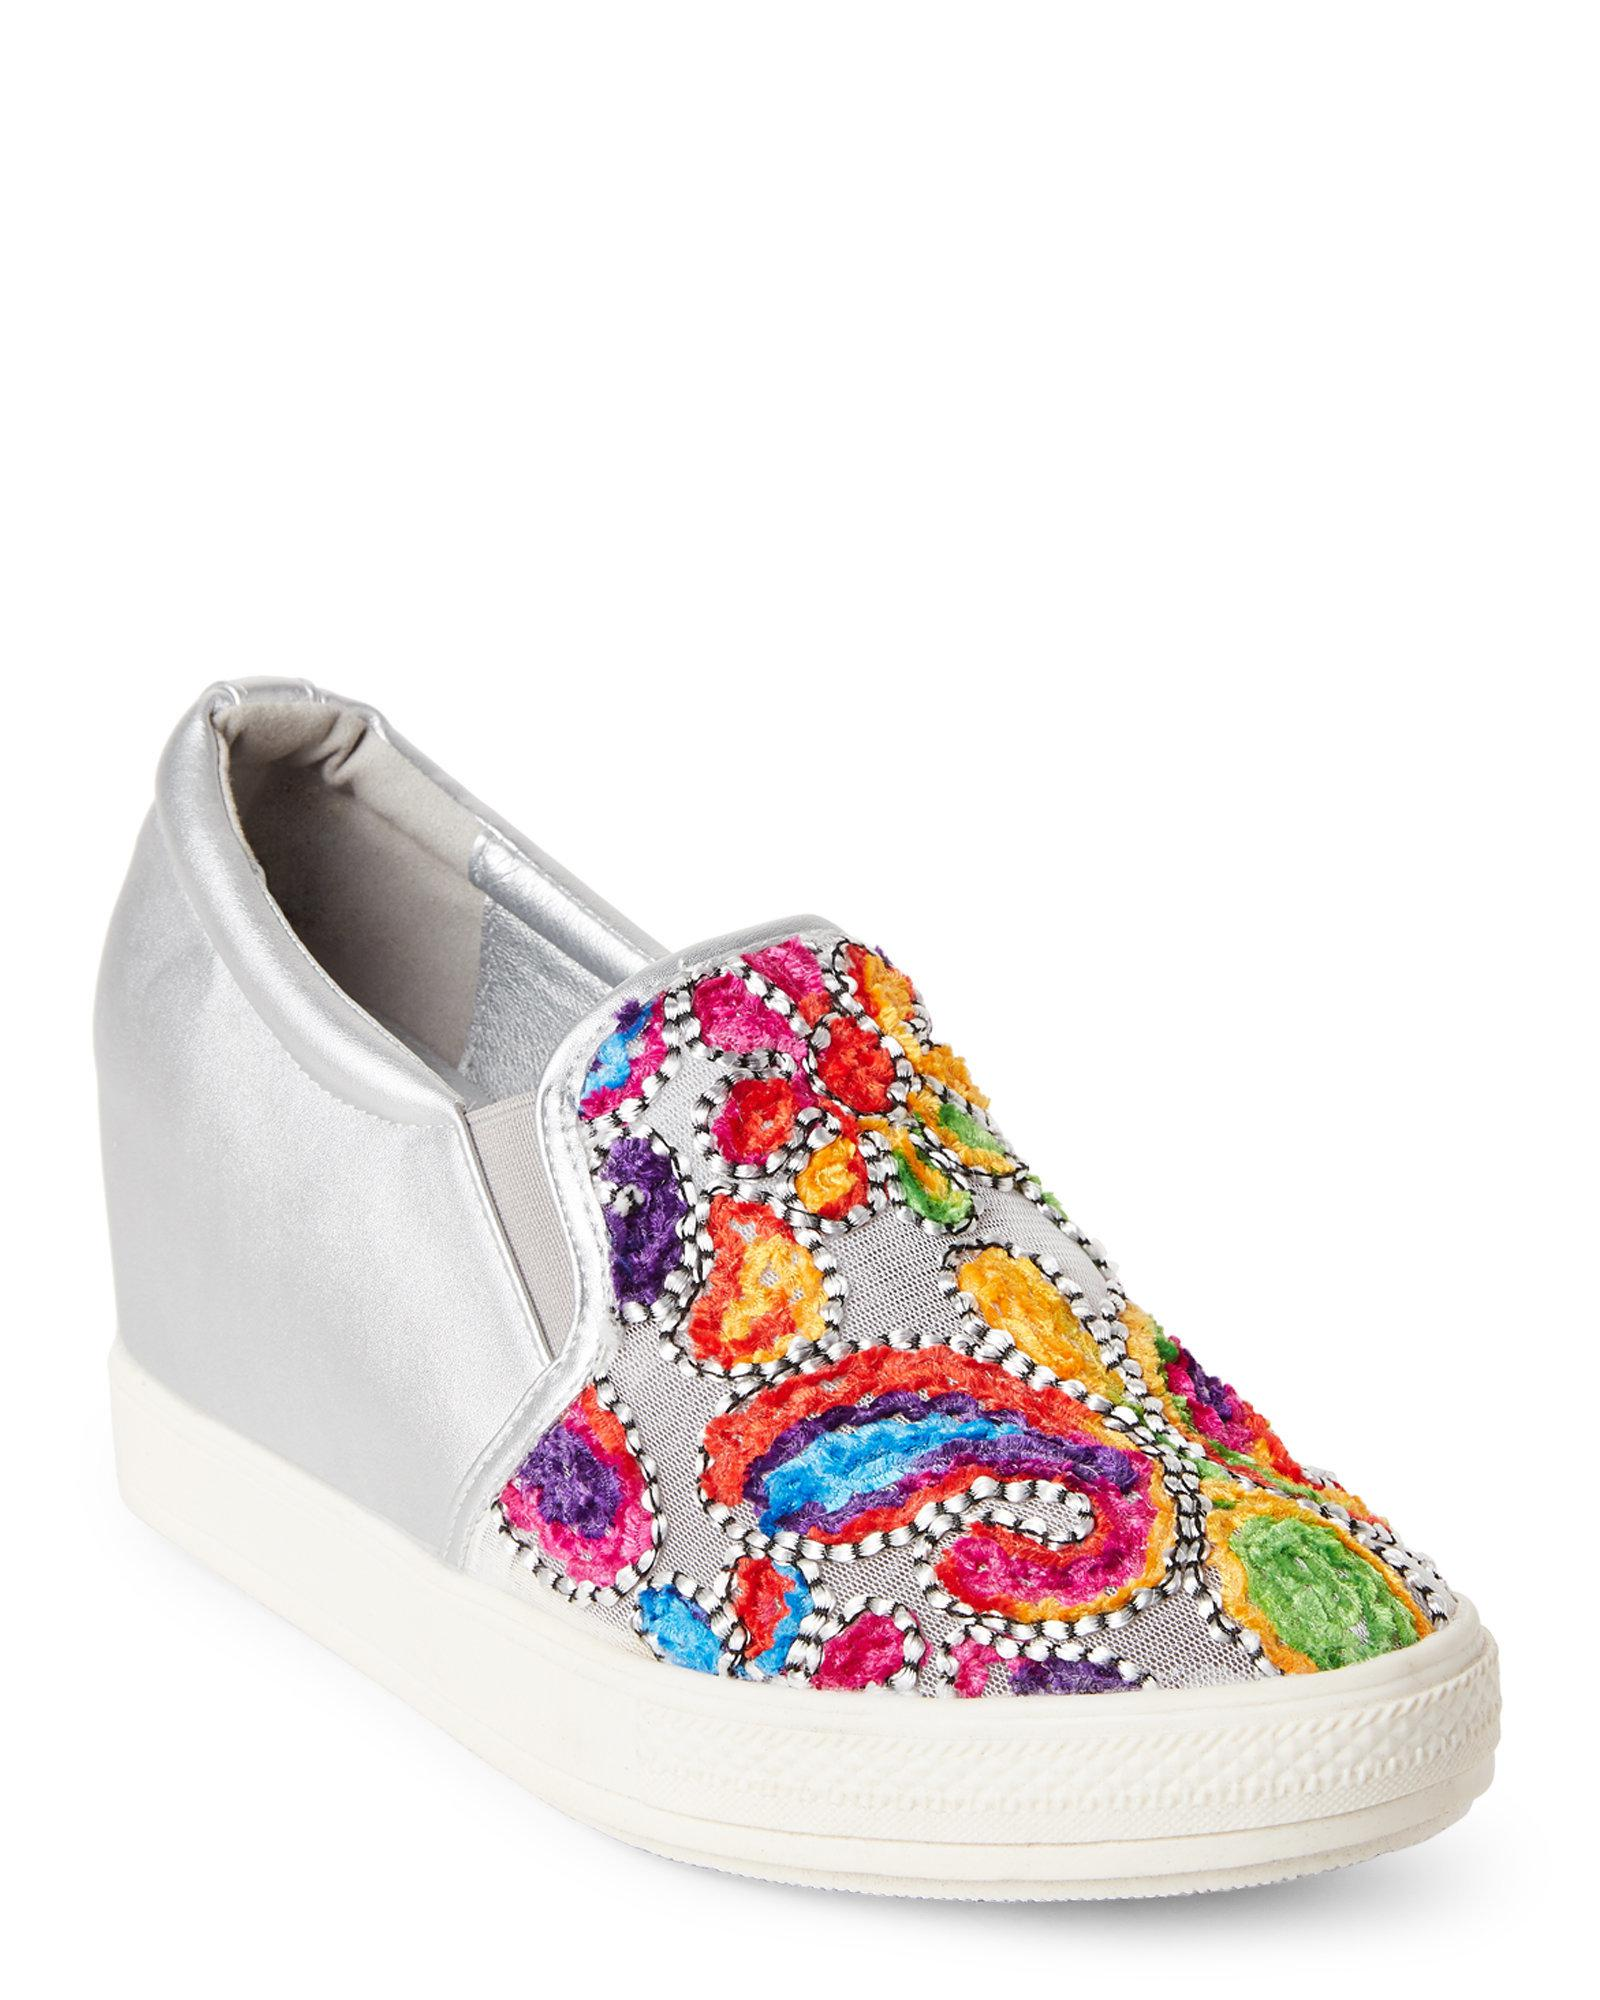 09a0e5629ec9 Lyst - Wanted Silver Picasso Embroidered Wedge Sneakers in Metallic